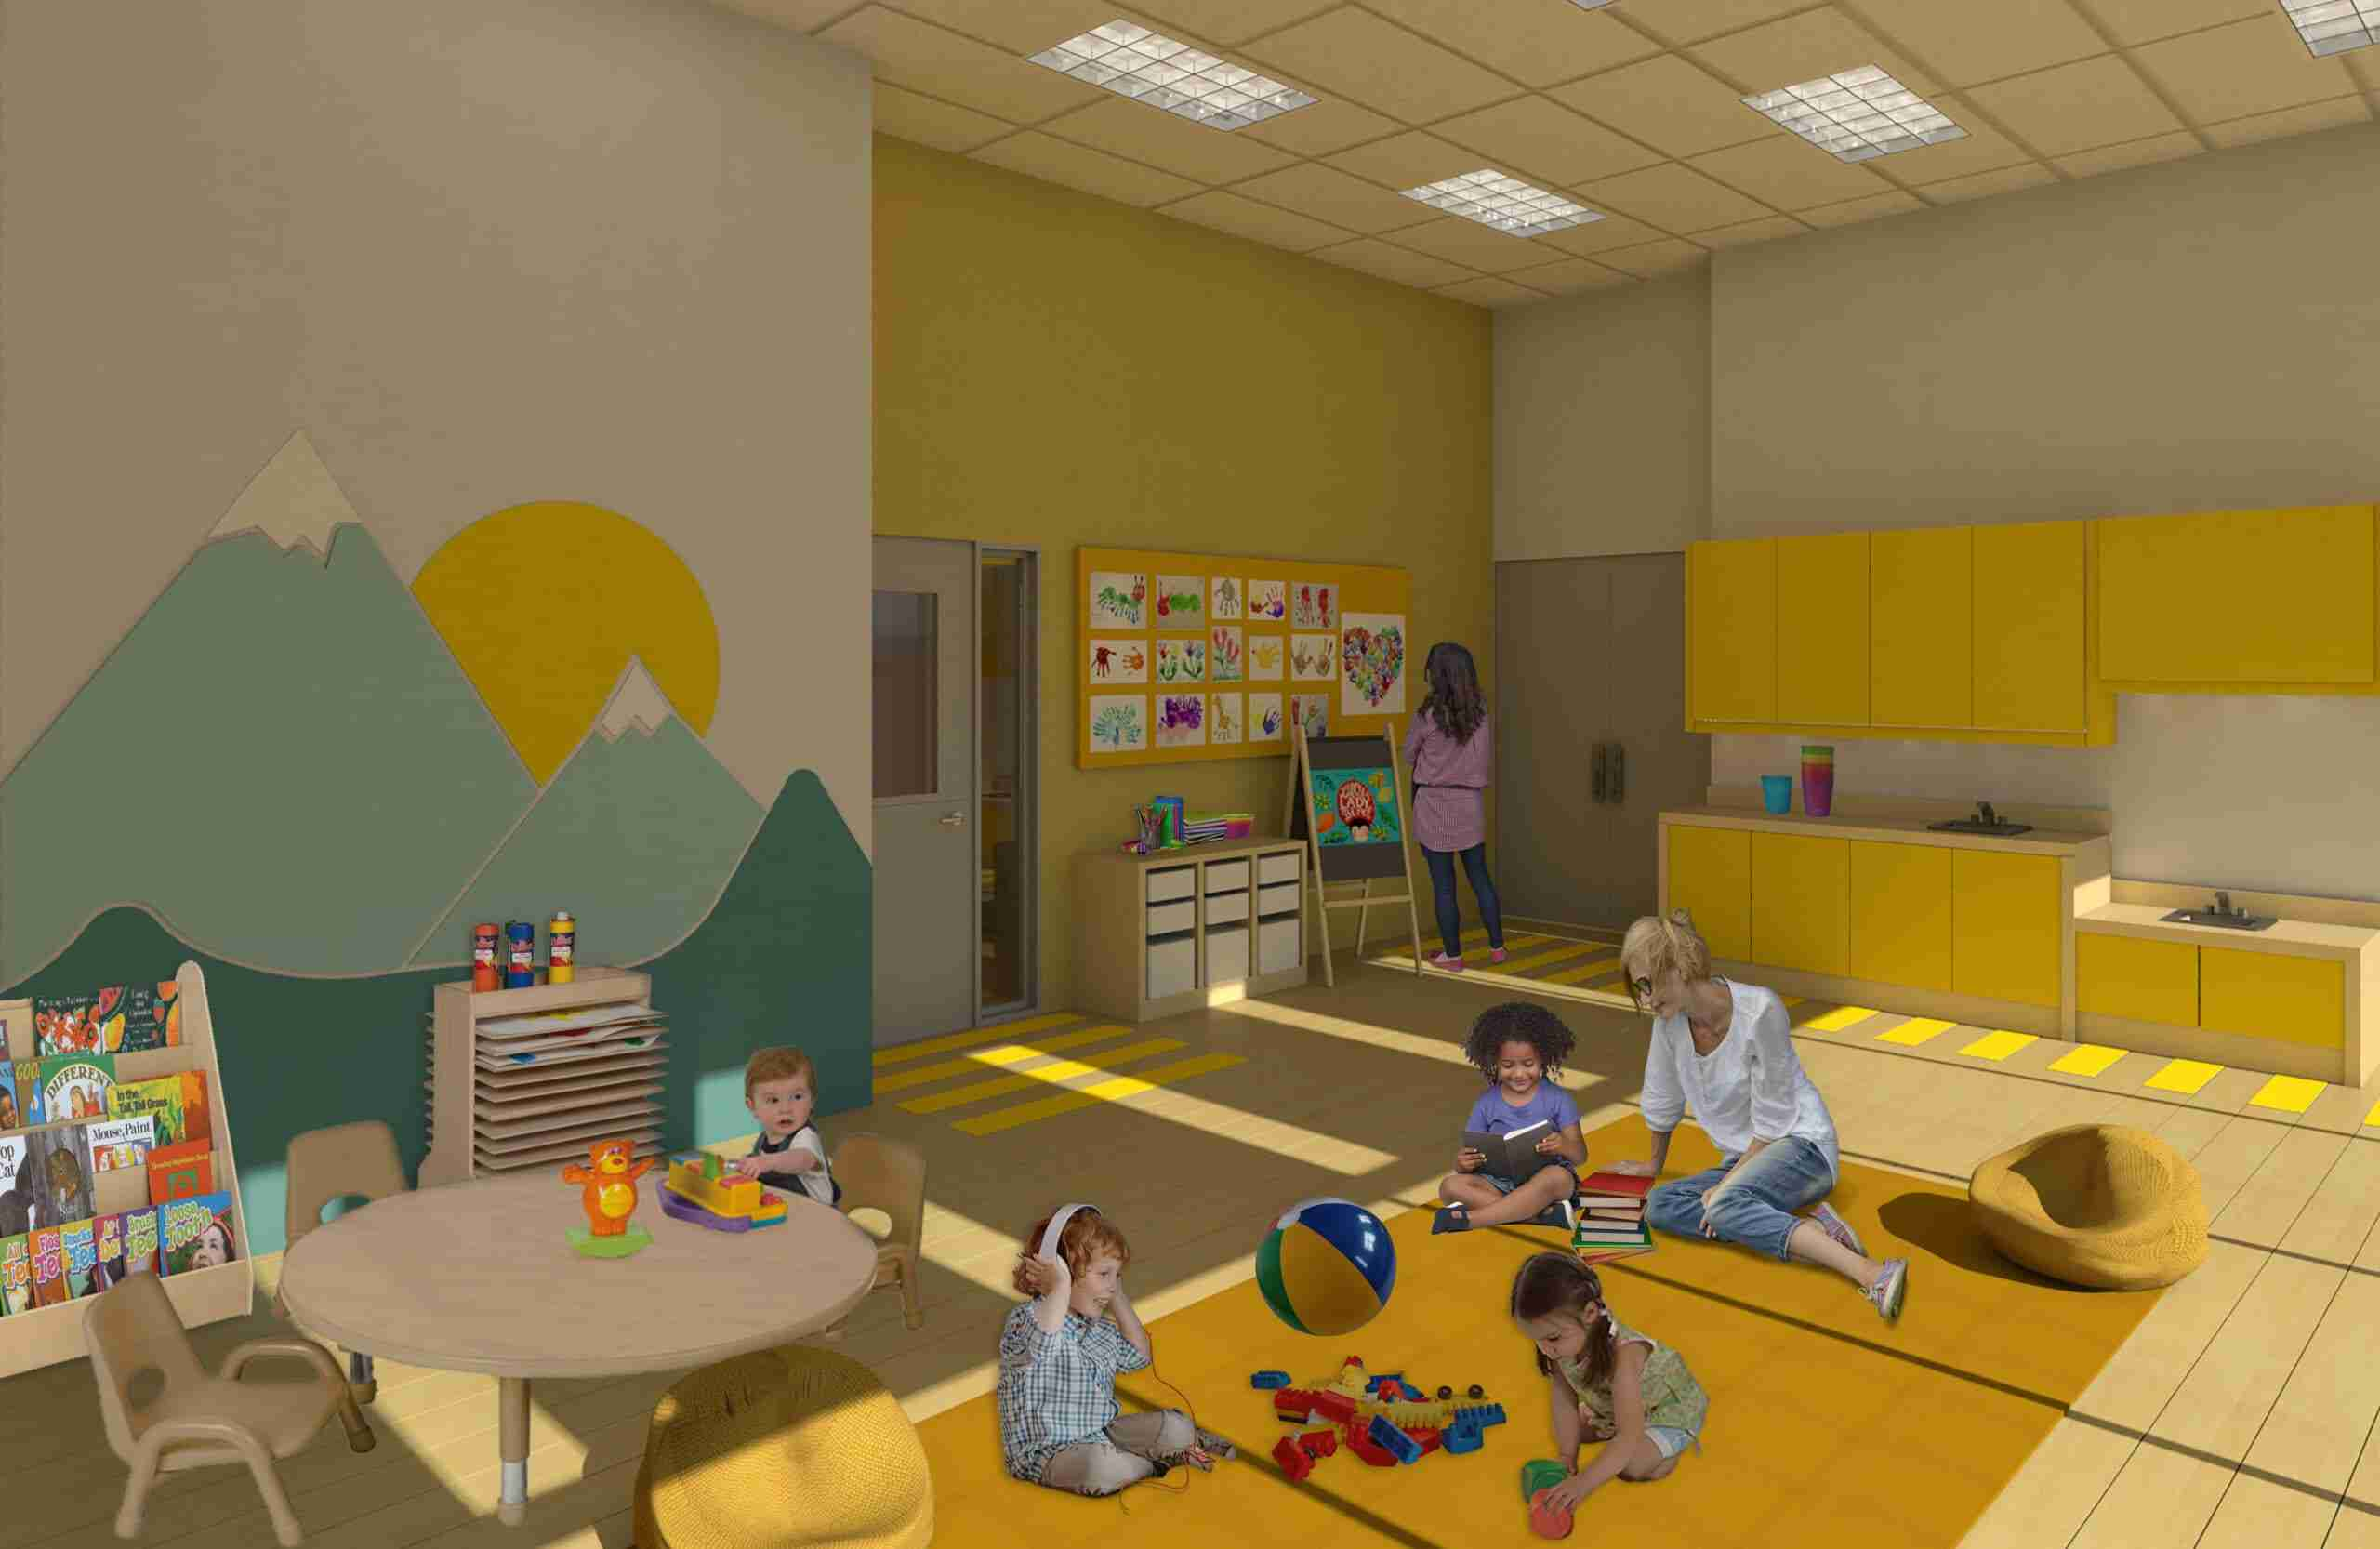 Play room showing toddlers playing with educational toys